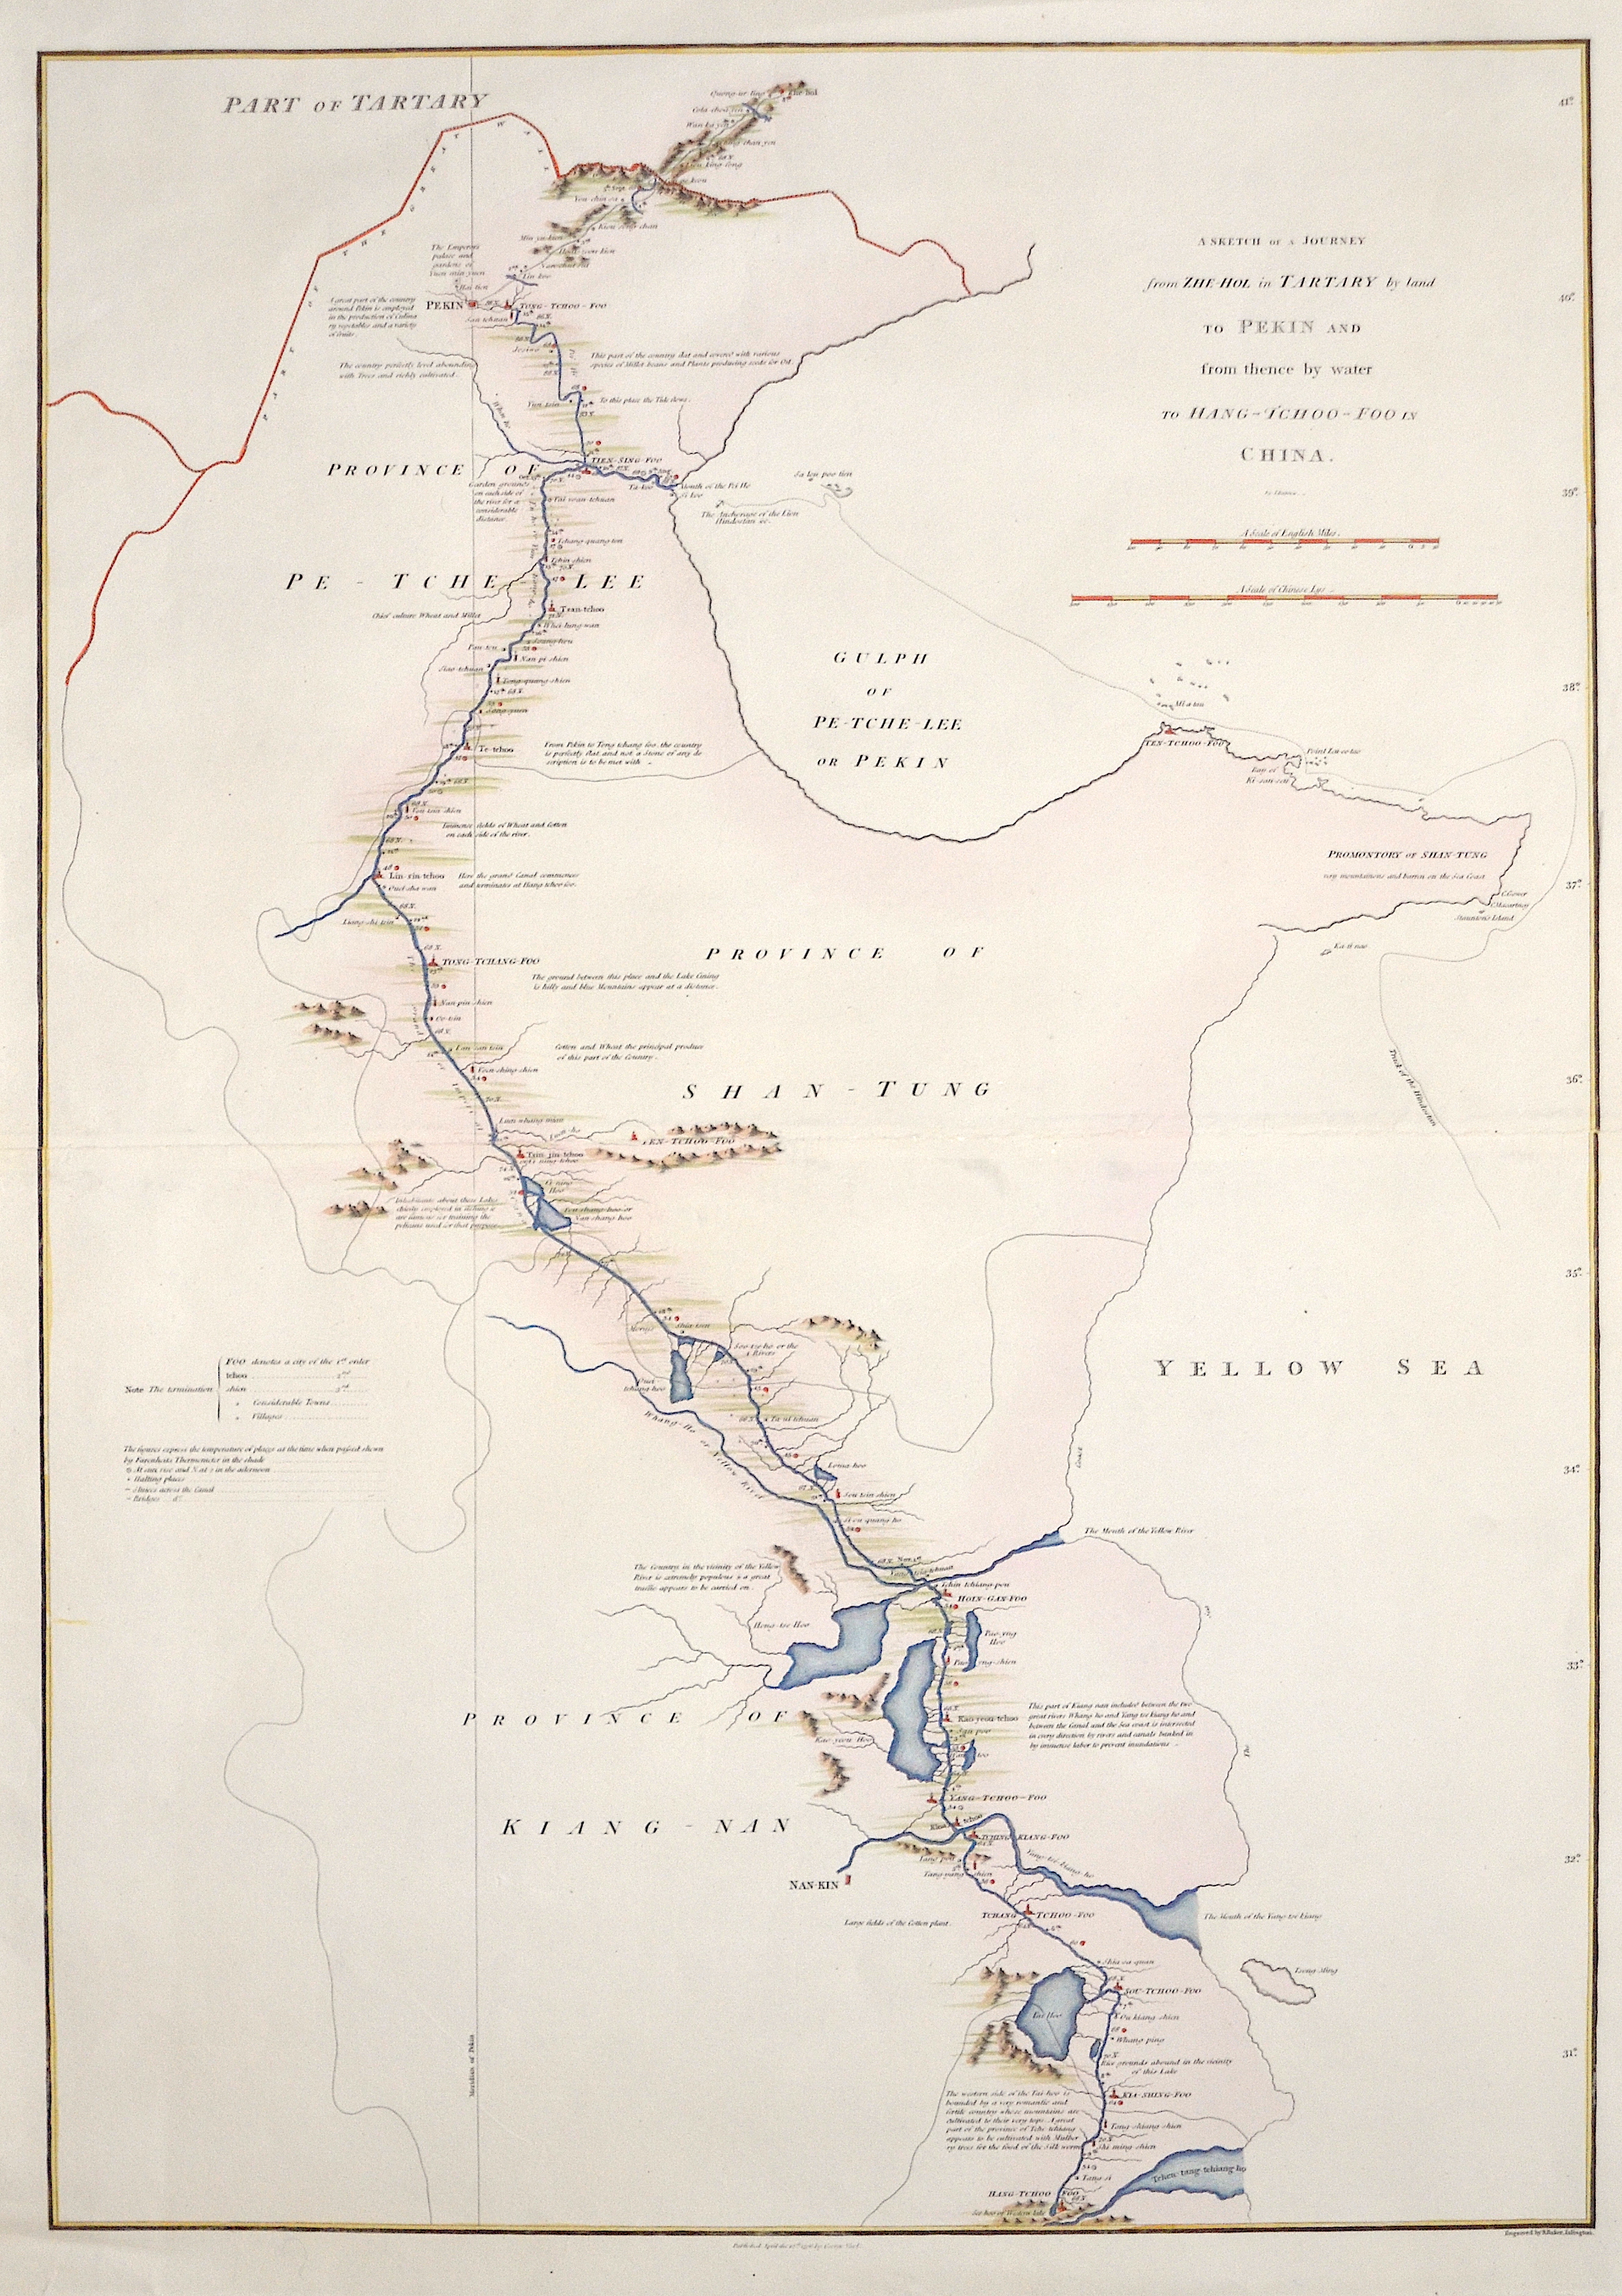 Straunton  A Sketch of a Journey from Zhe-Hol in Tartary by land to Pekin and from thence by water to Hang-Tchoo-Foo in China.